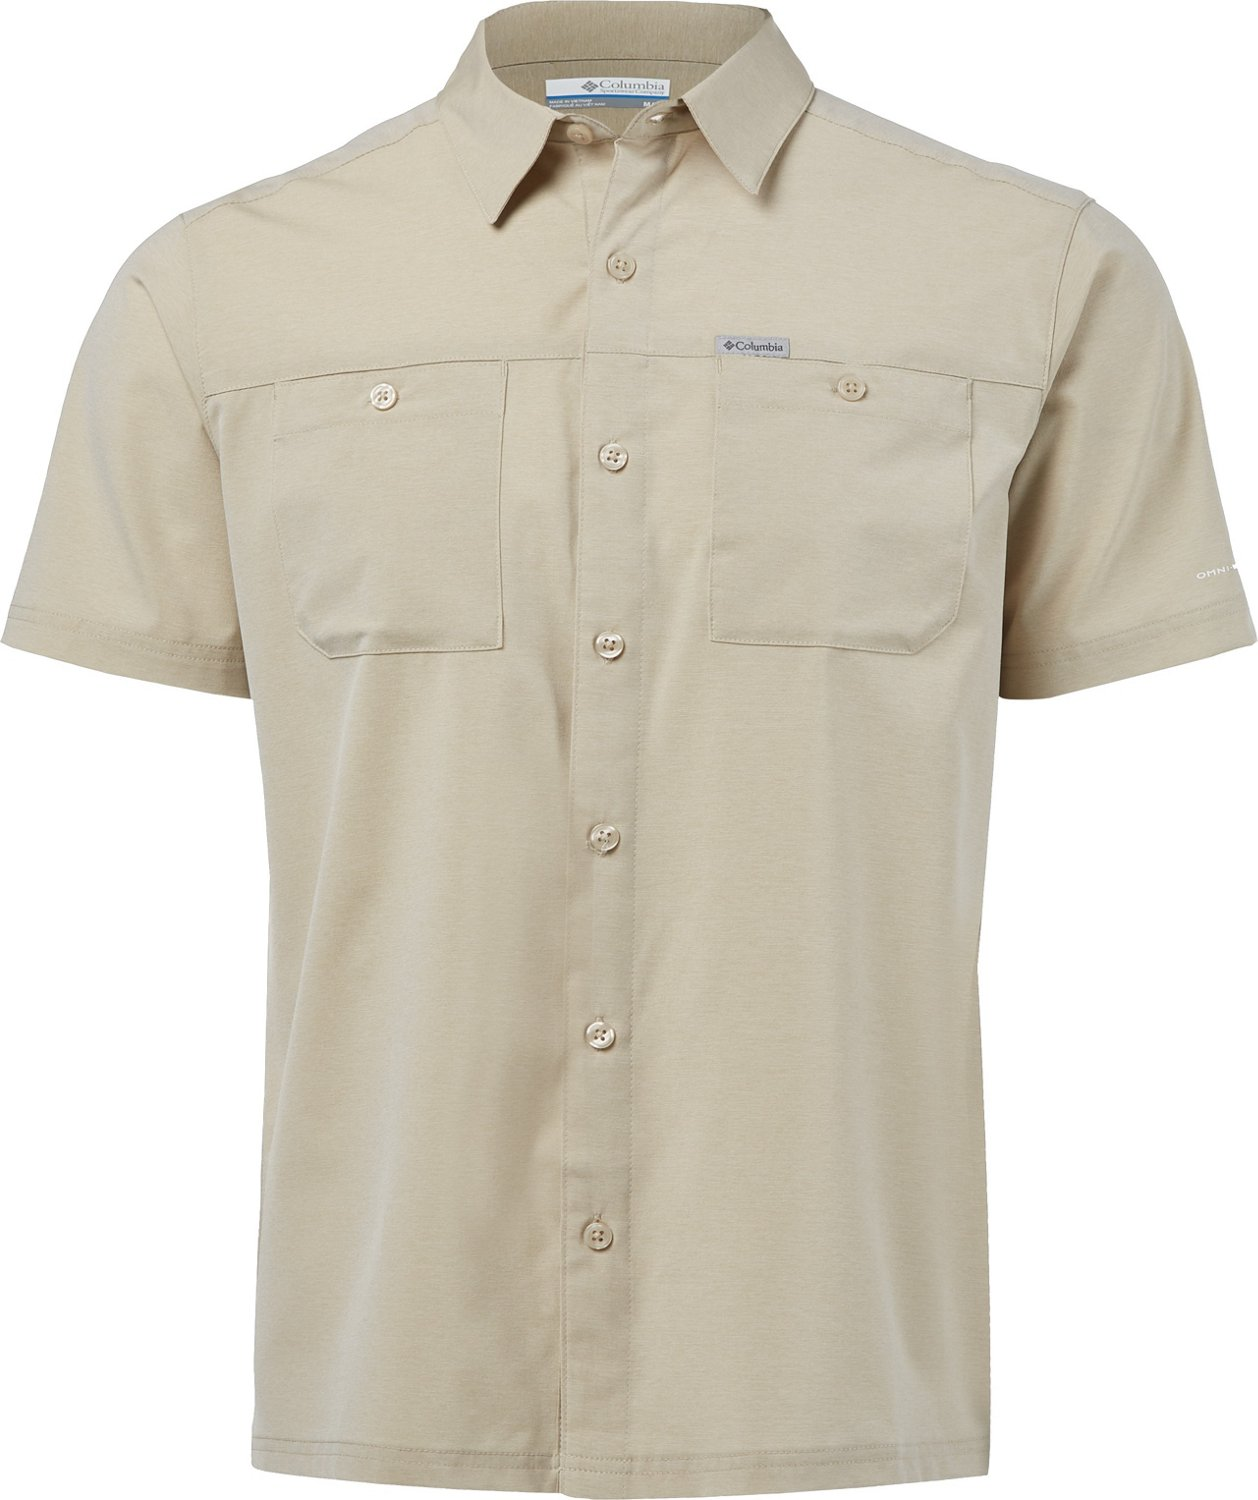 bafafb25e29 Columbia Sportswear Men's Logan Lake Short Sleeve Button-Down Shirt ...